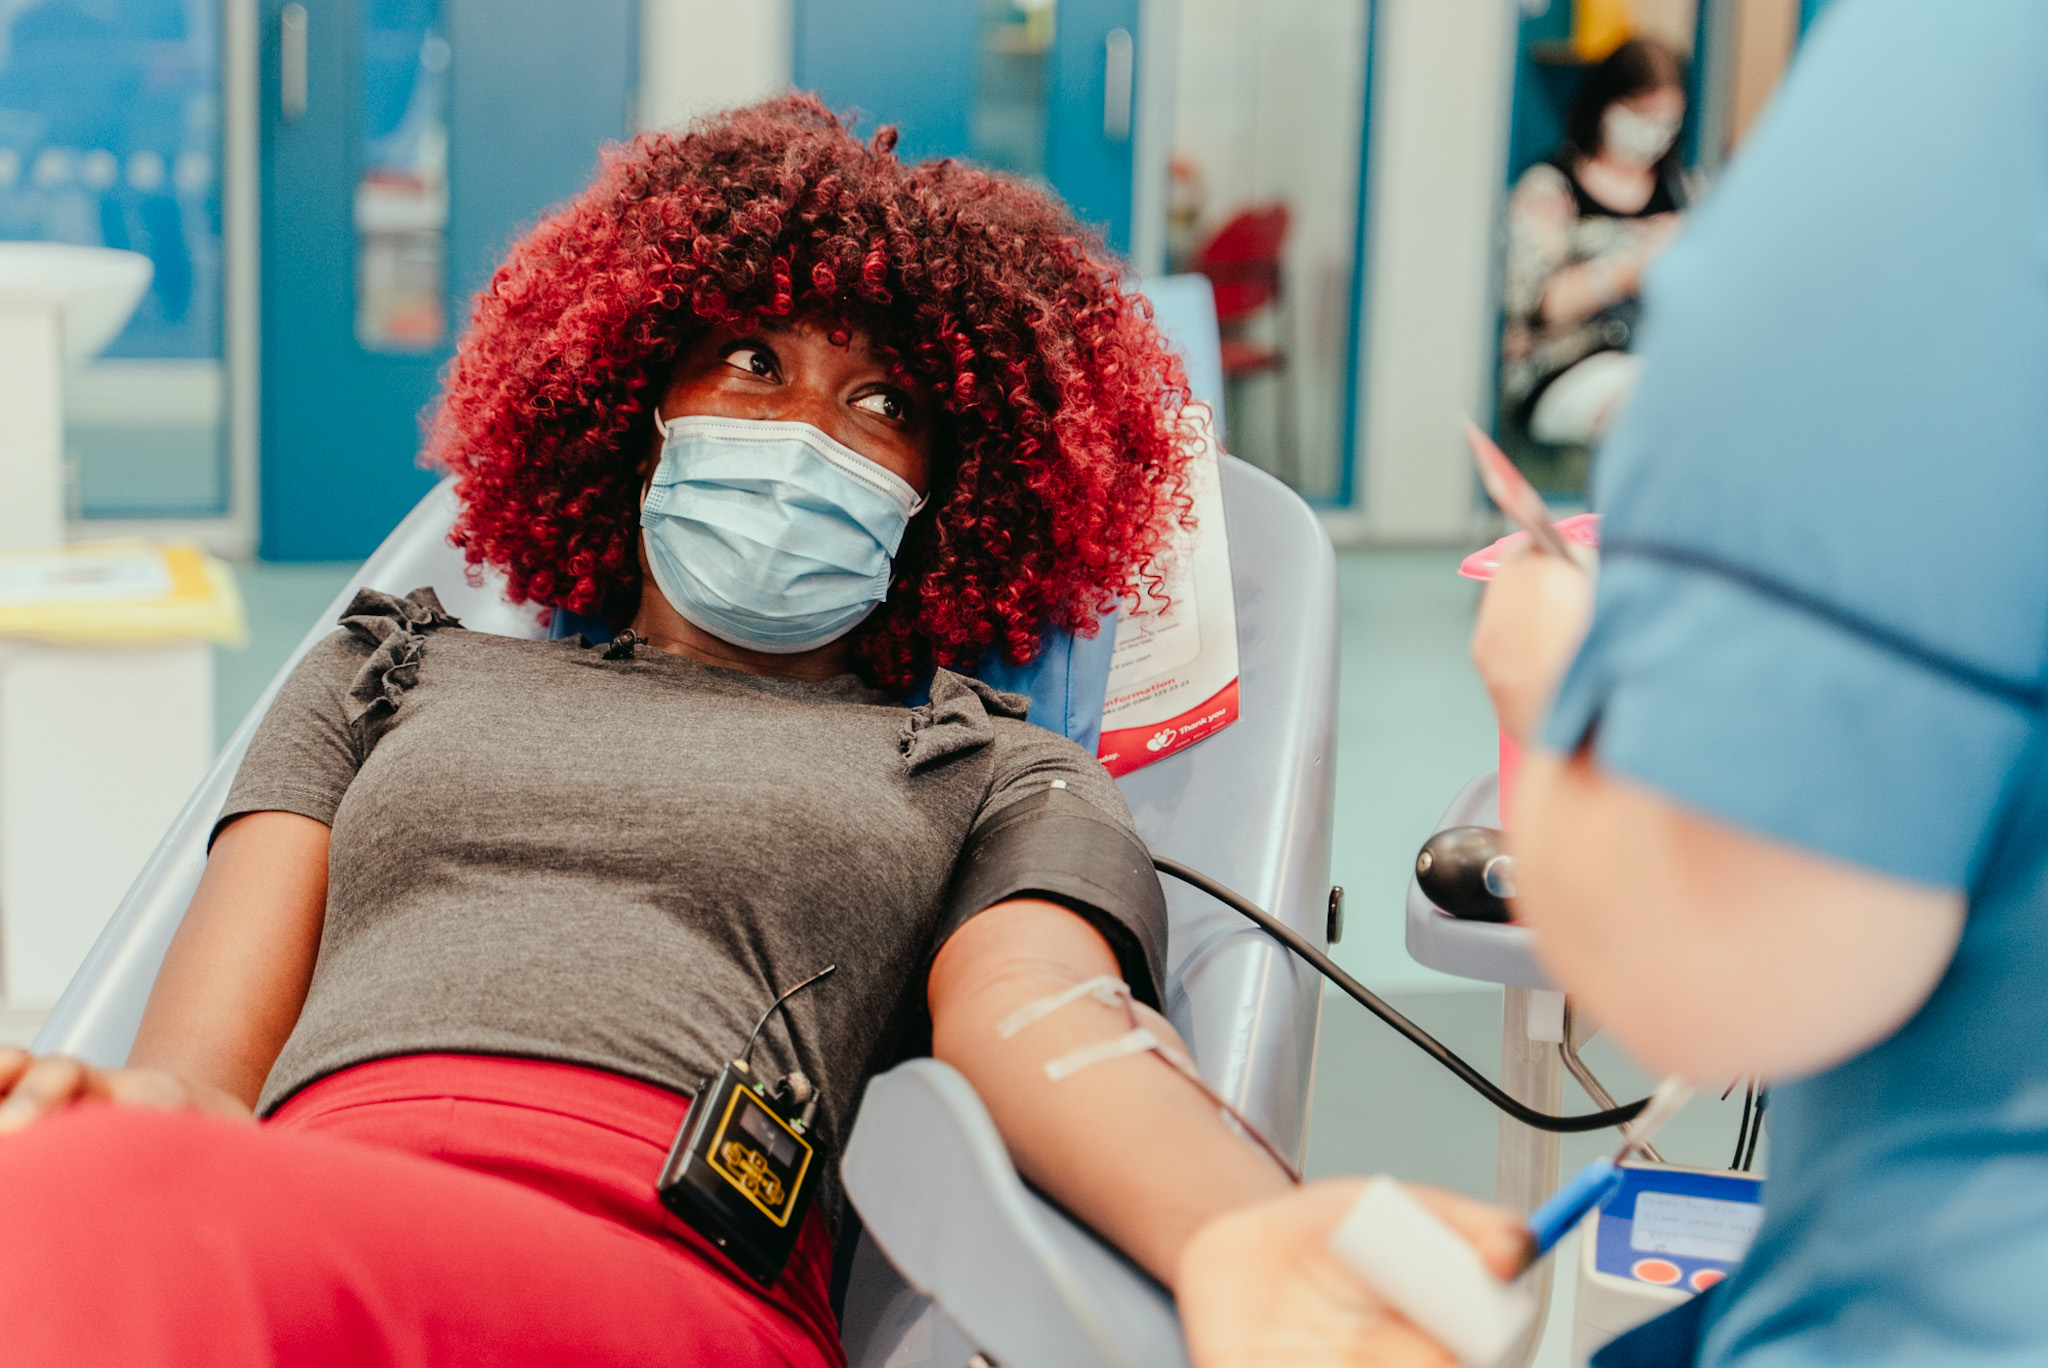 Charming's sister Zenith giving blood in the chair